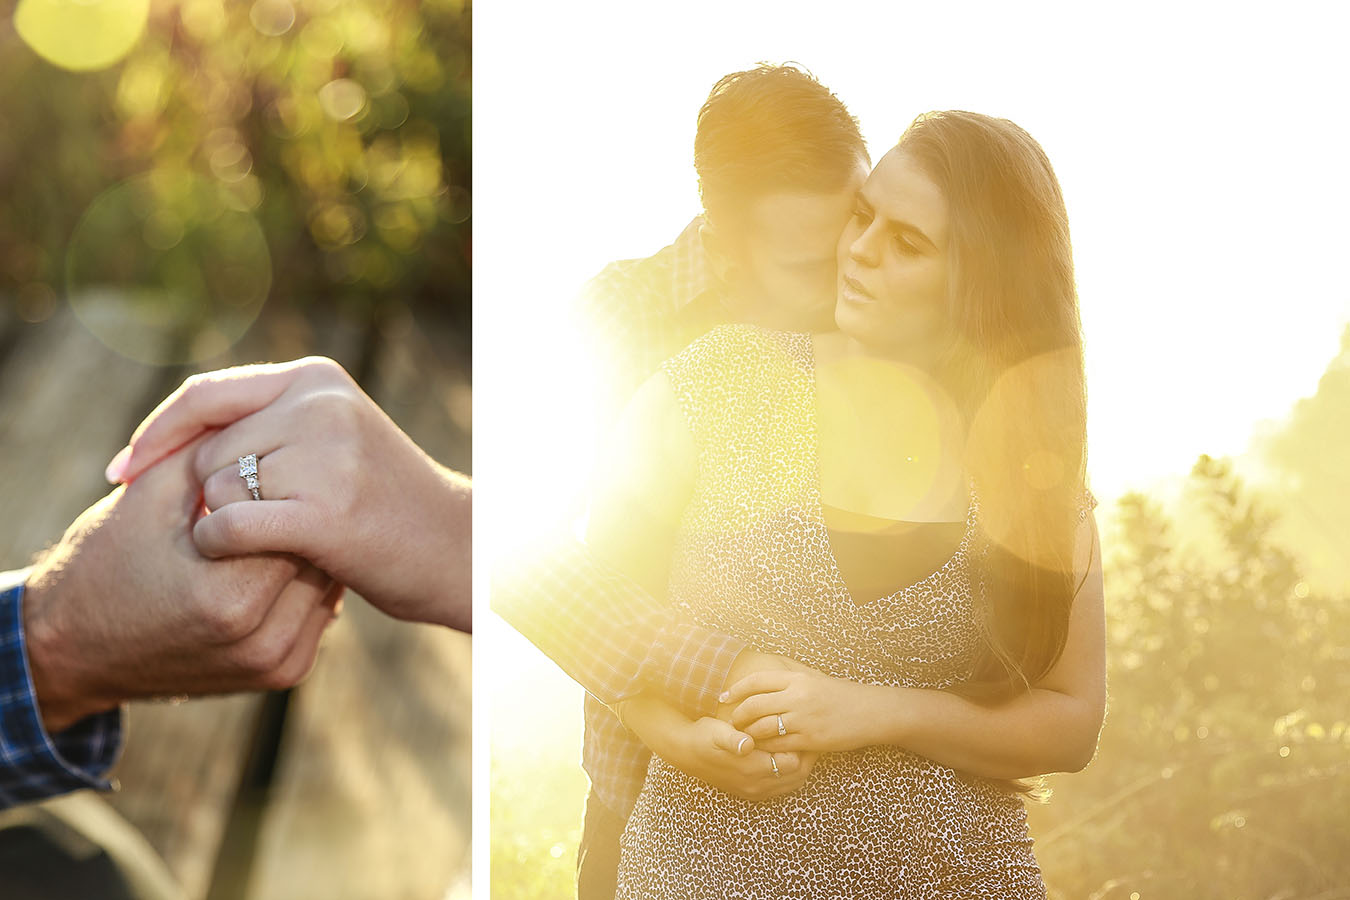 couple-engagement-ring-henry-summers-photography-wedding-photographer-durban-gillitts-kwa-zulu-natal-south-africa